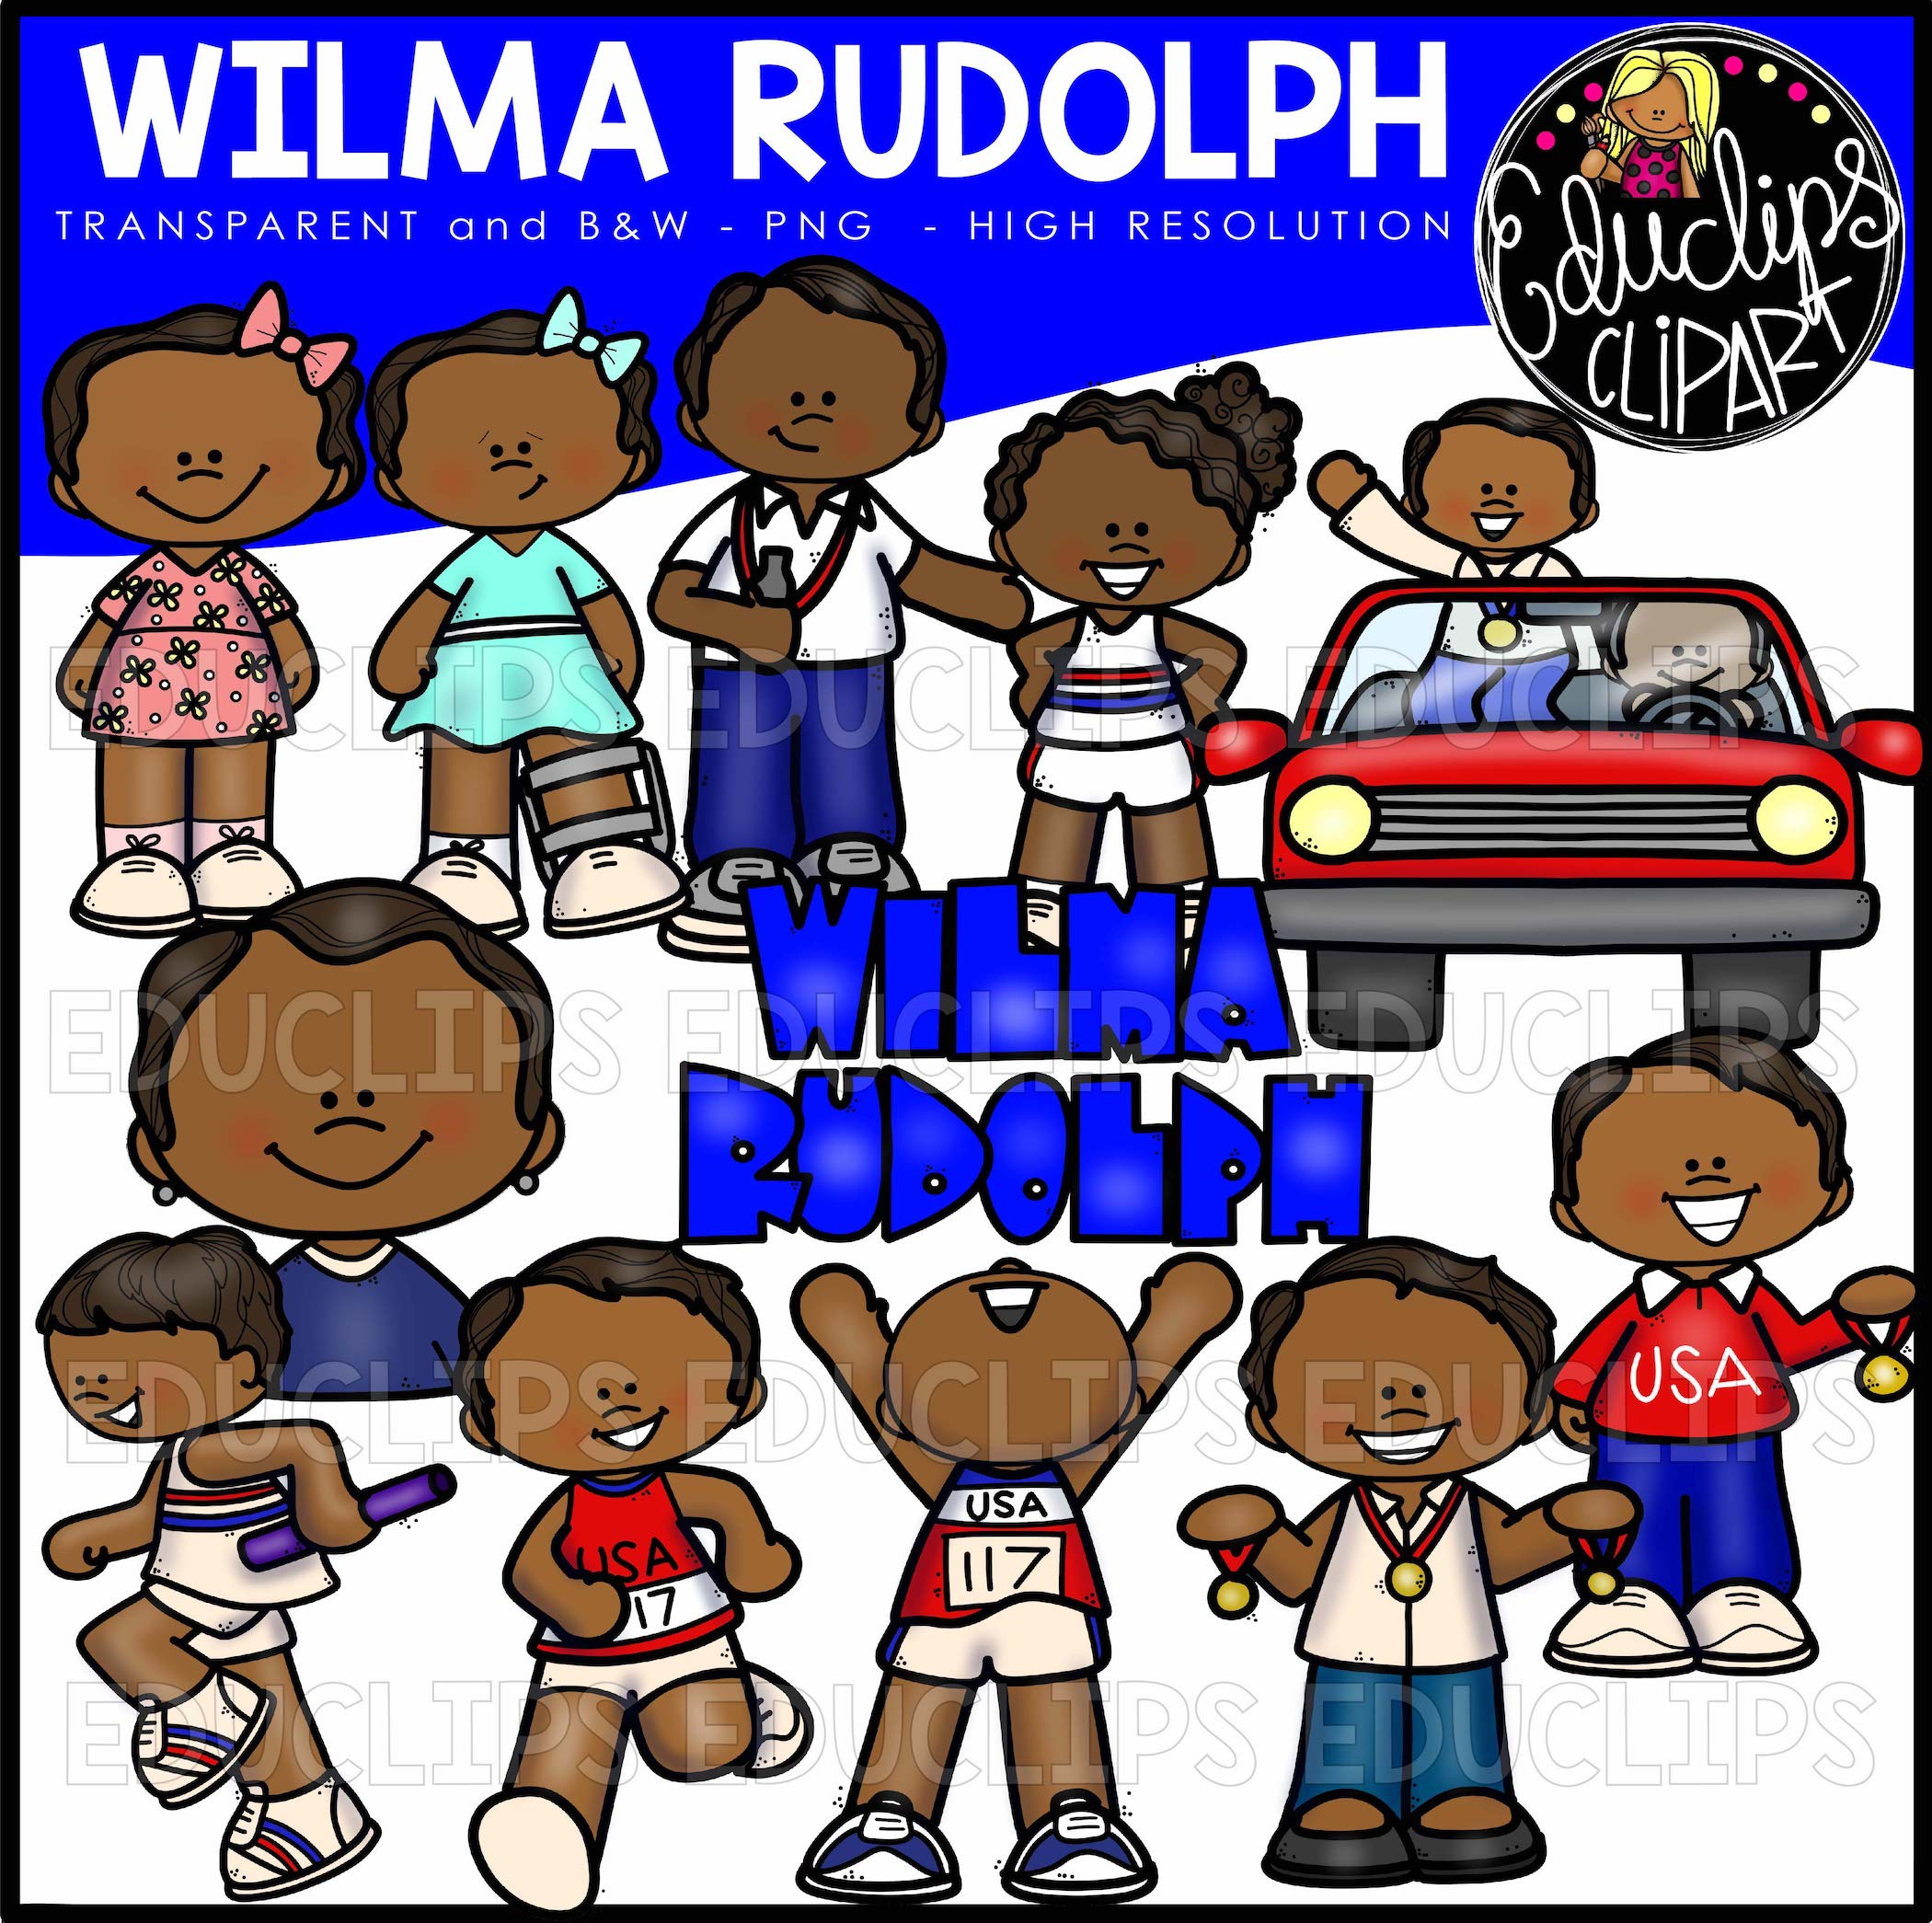 Wilma rudolph clip art bundle color and bw welcome to educlips wilma rudolph voltagebd Choice Image